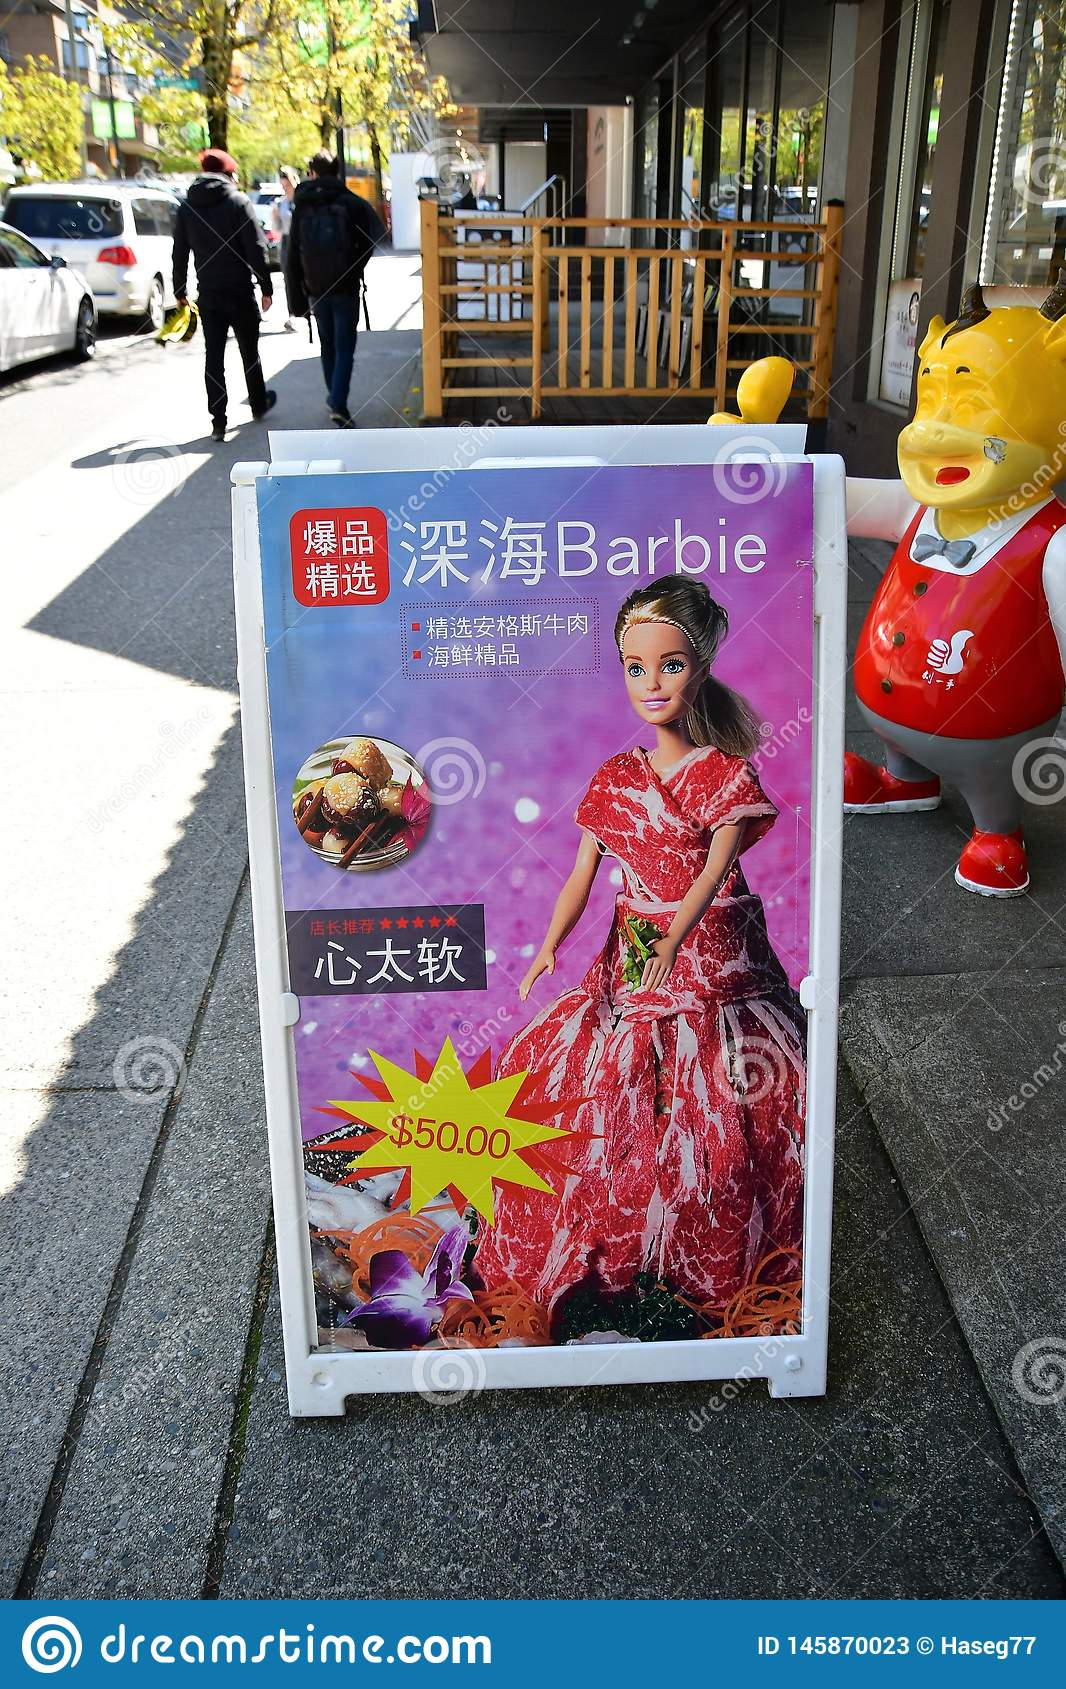 Deep sea Barbie. Barbie. Looks like Barbie doll was wrapped with thin sliced beef meat